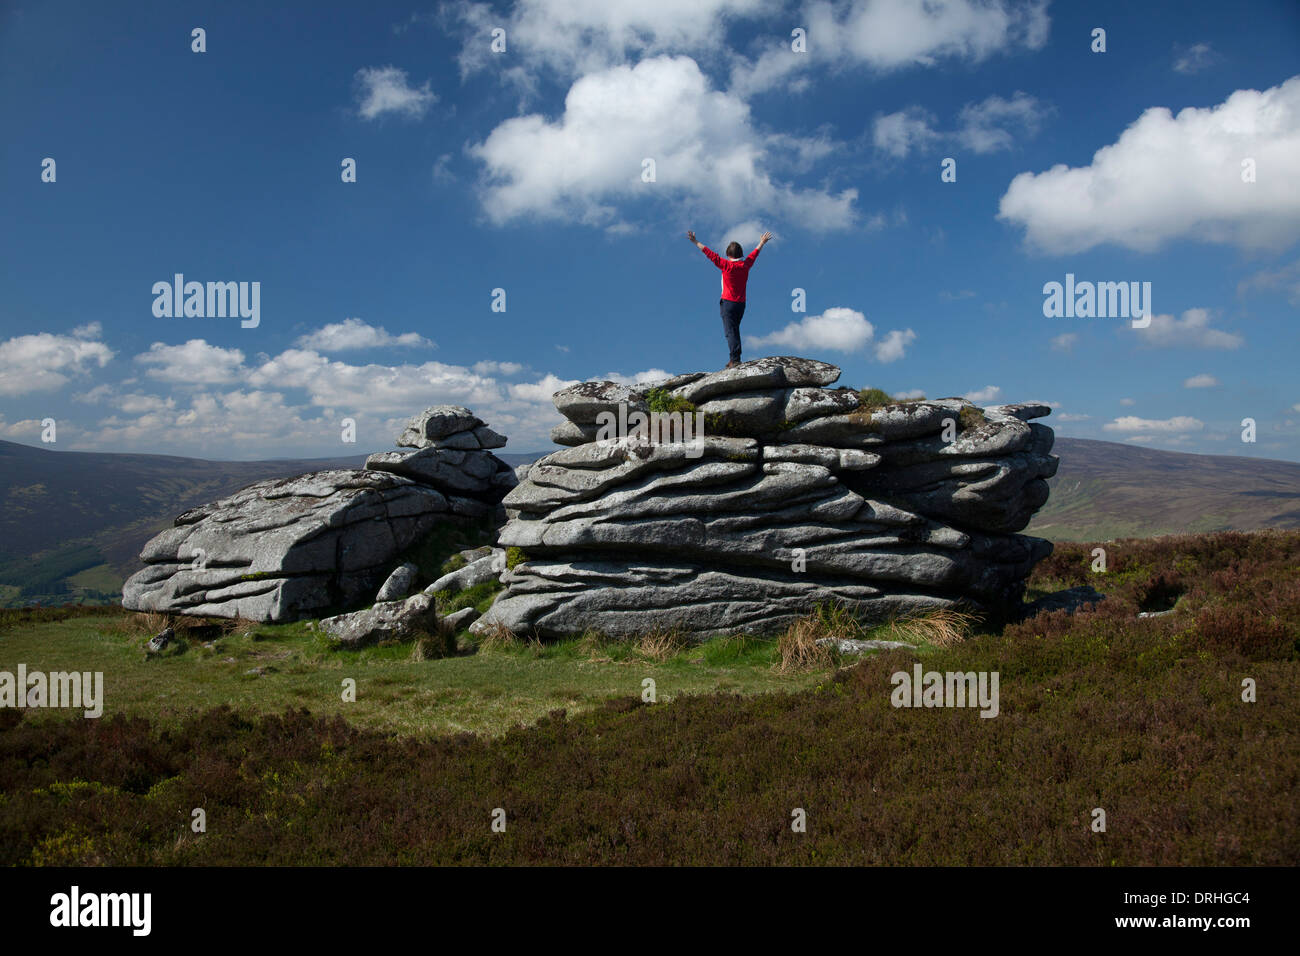 Walker on the granite tor of Fitzwilliam's Seat, near the summit of Knocknagun. On the border of counties Dublin and Wicklow, Ireland. - Stock Image